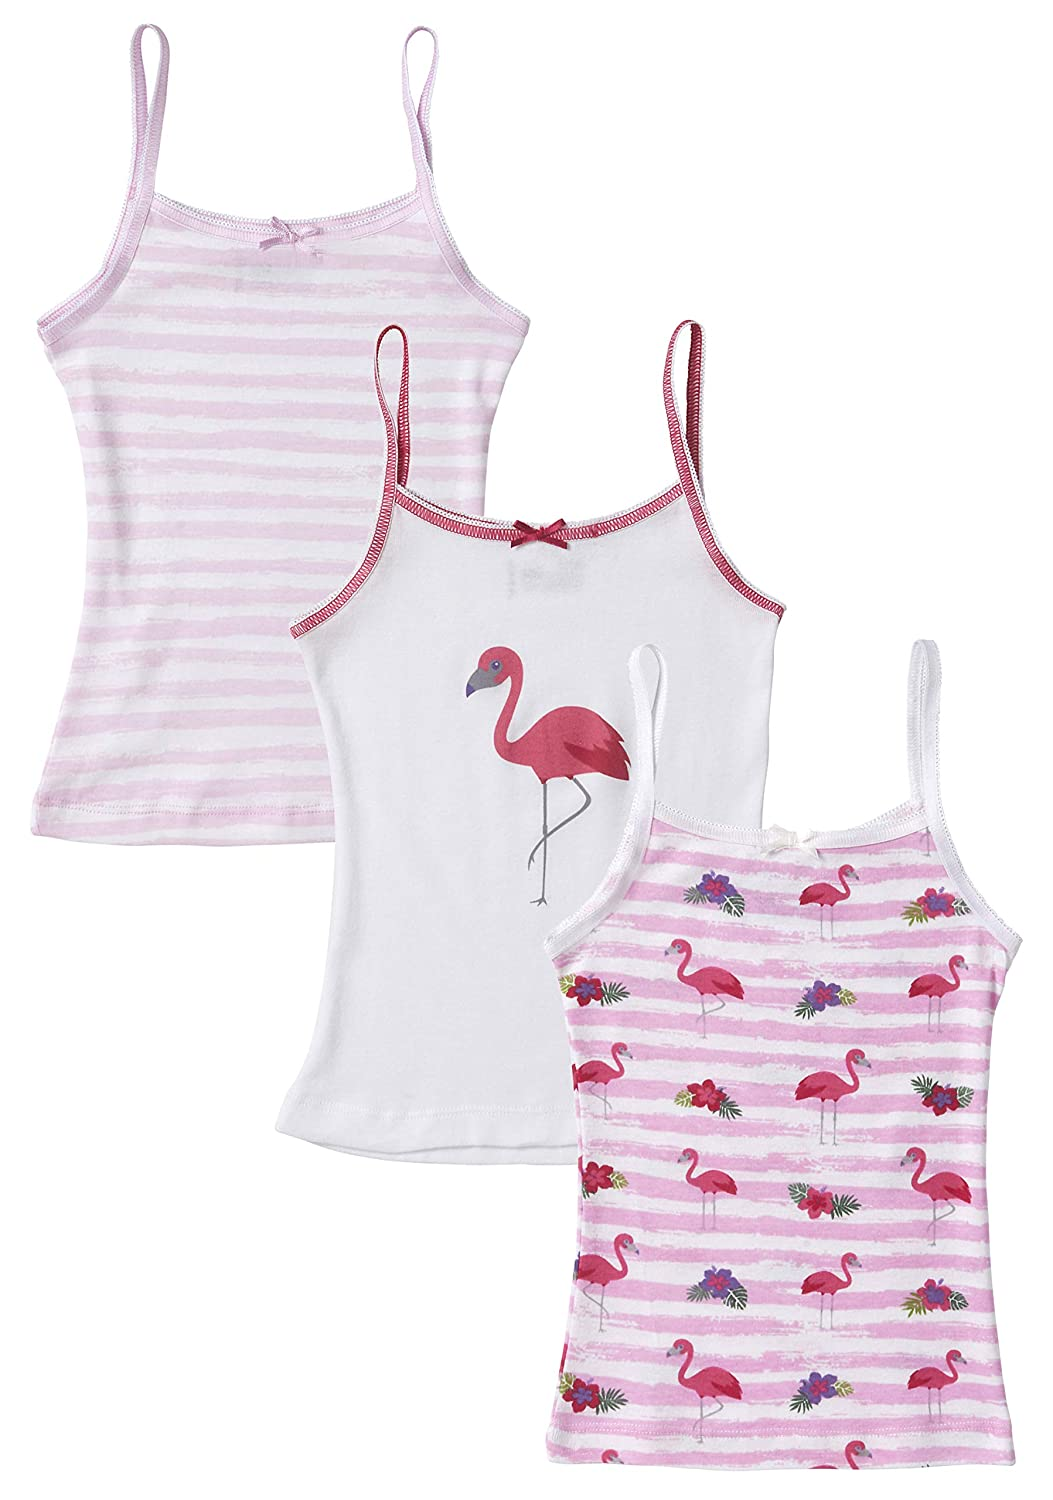 Sportoli Girls 3 Pack 100% Cotton Tagless White and Flamingo Cami Undershirts